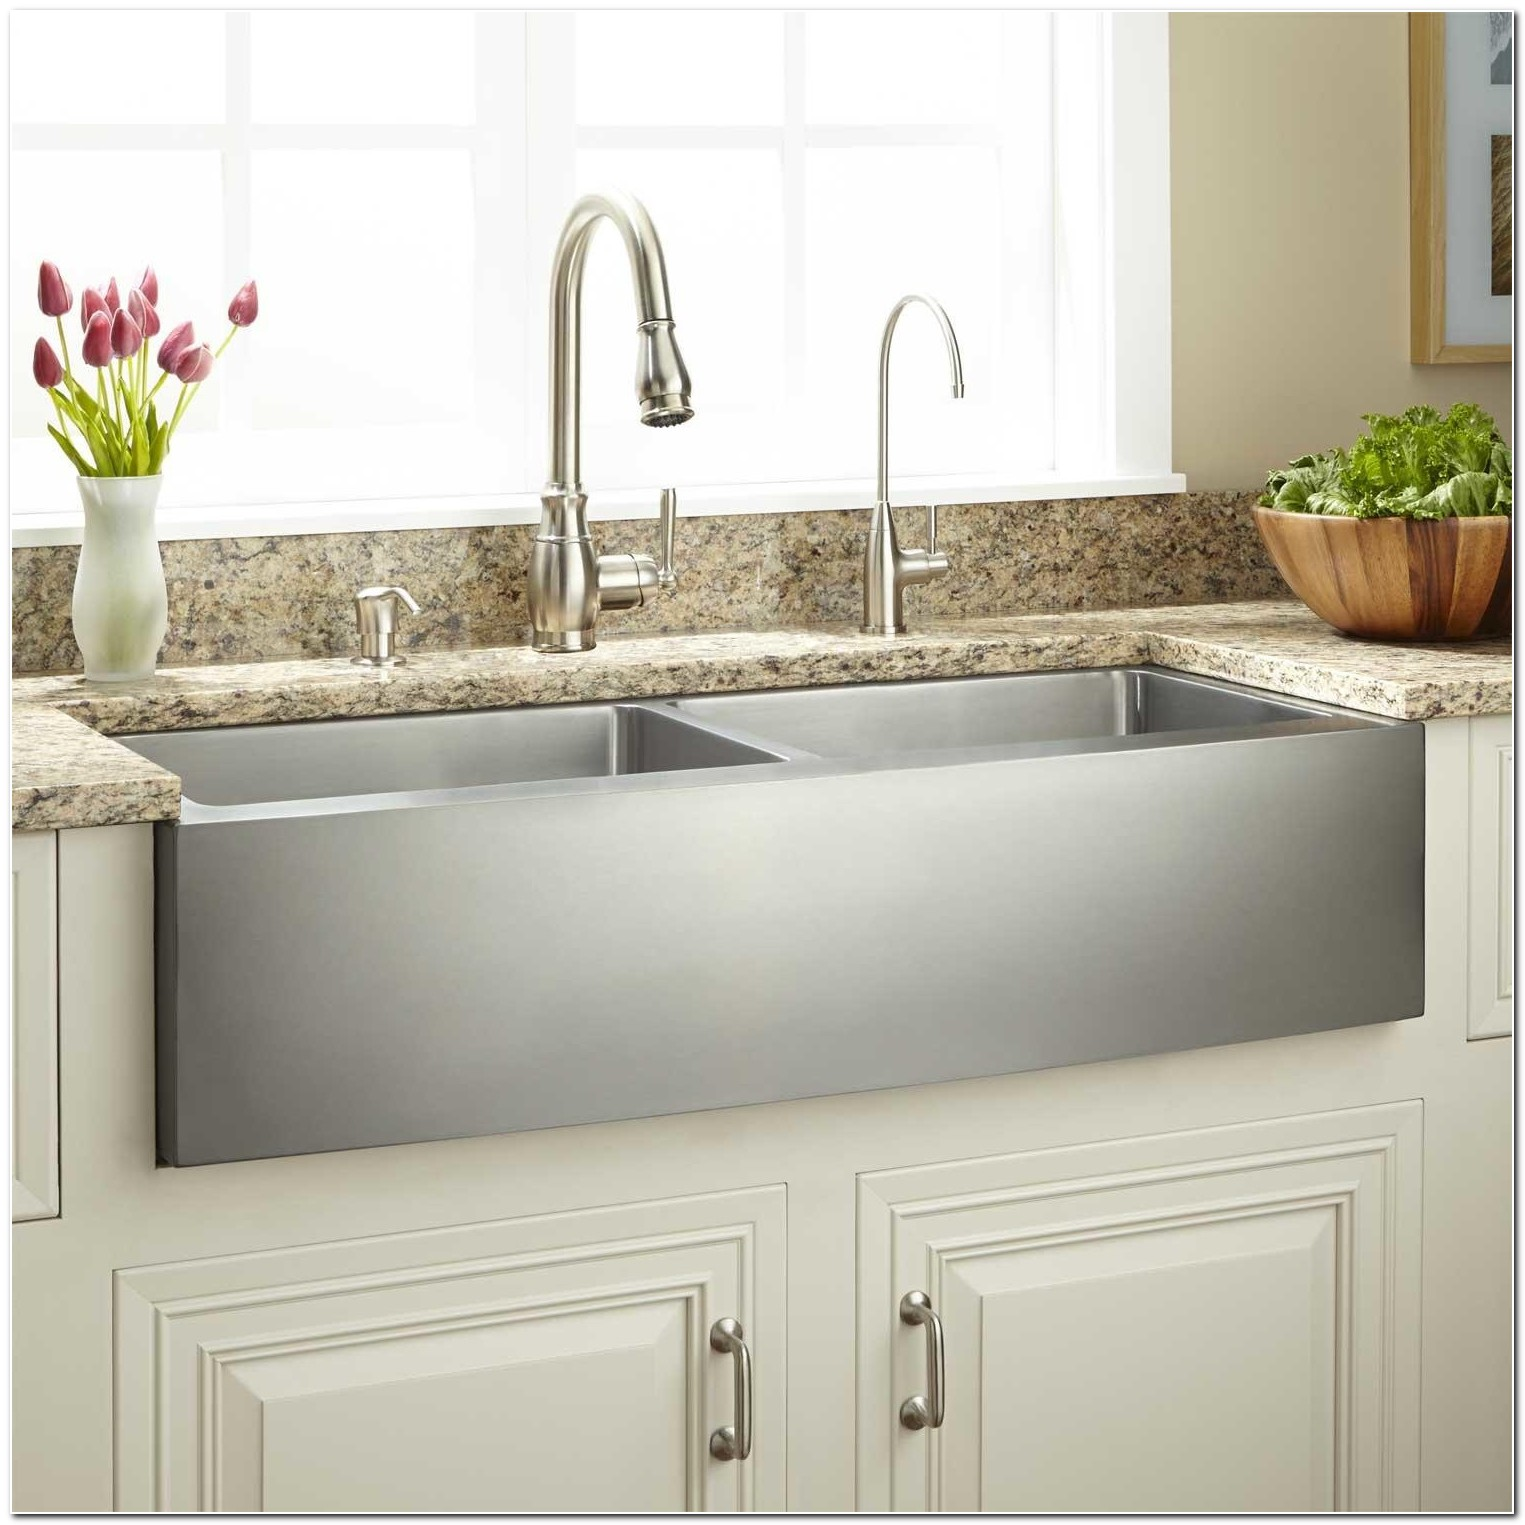 Apron Front Stainless Steel Sinks